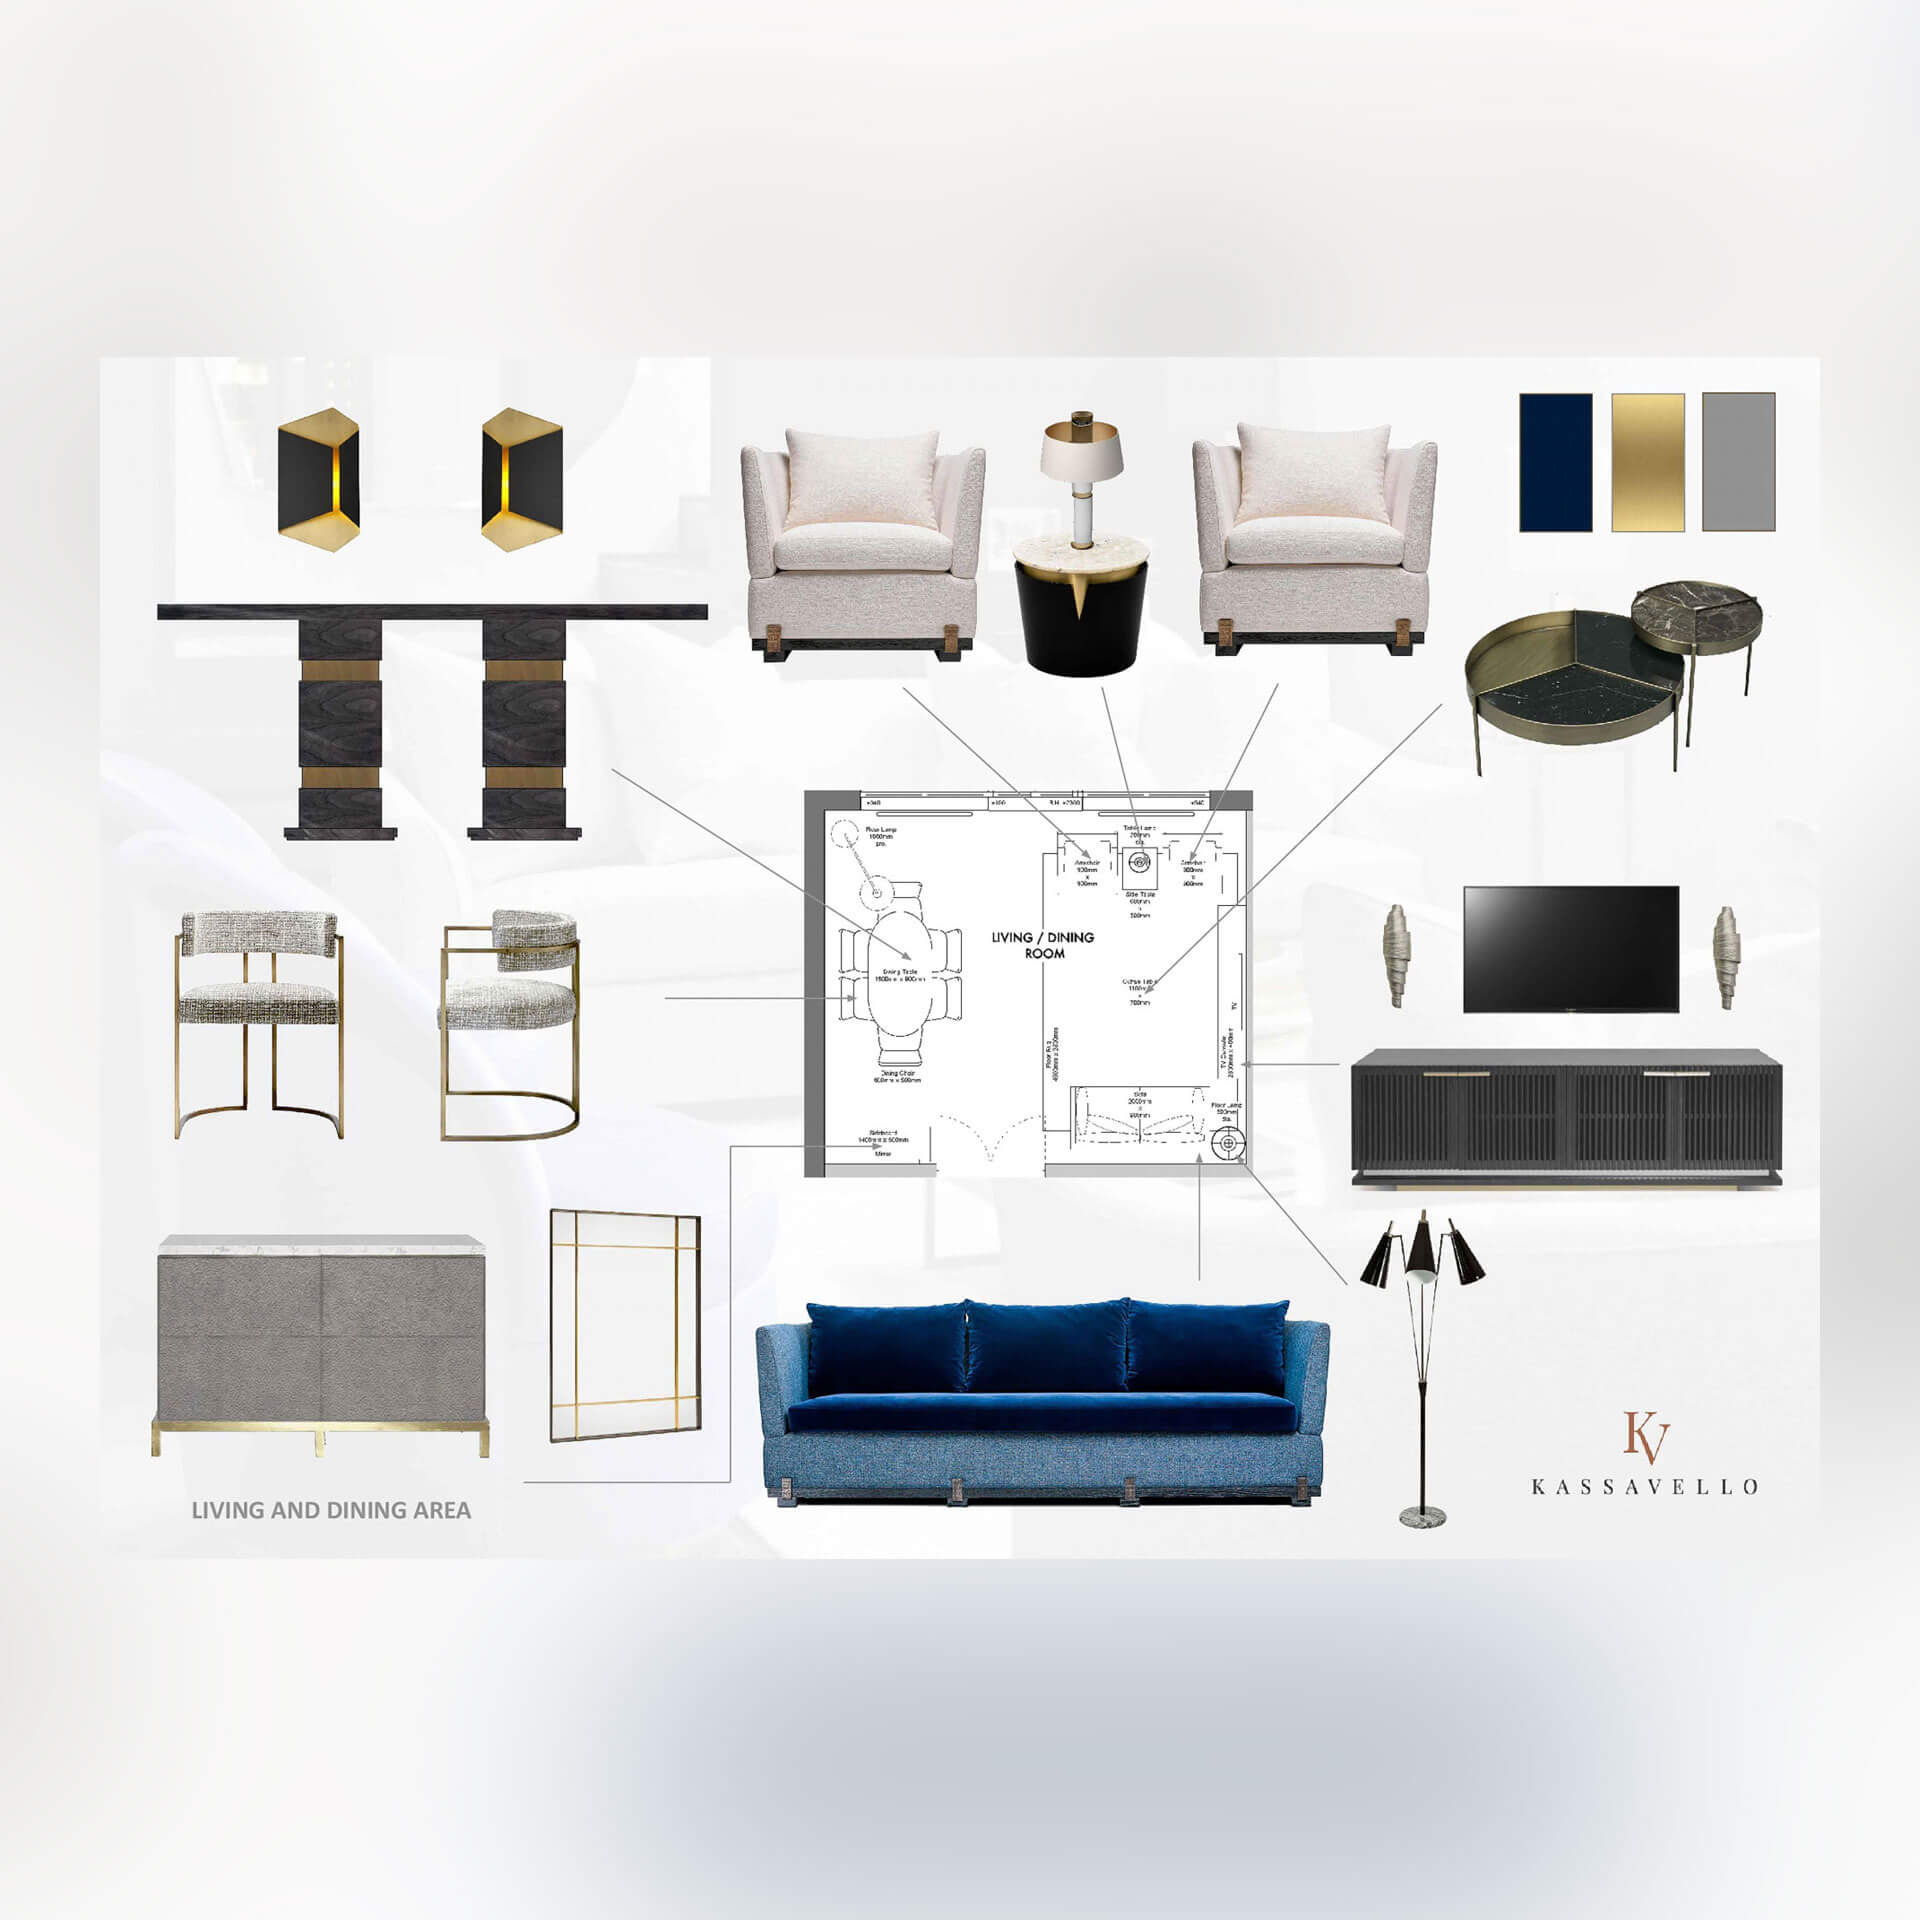 Furniture Layout & Room Design